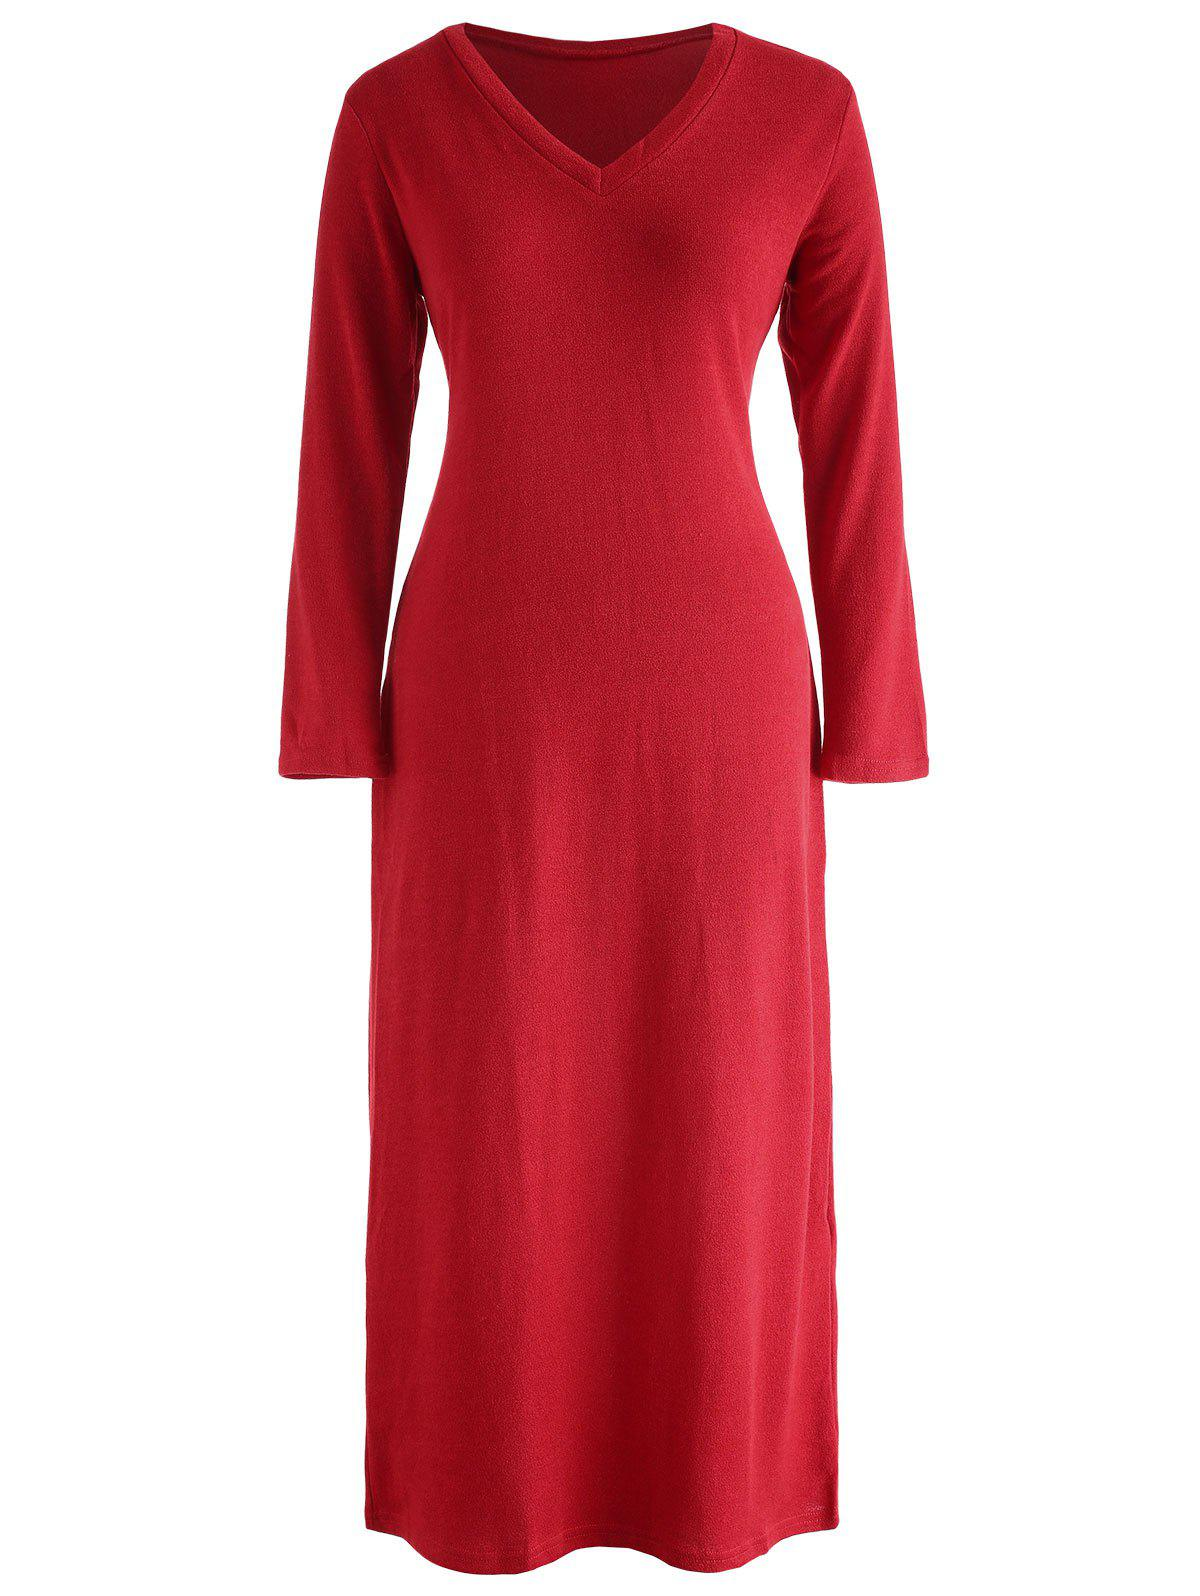 V Neck Maxi Knitwear Dress - CHERRY RED L